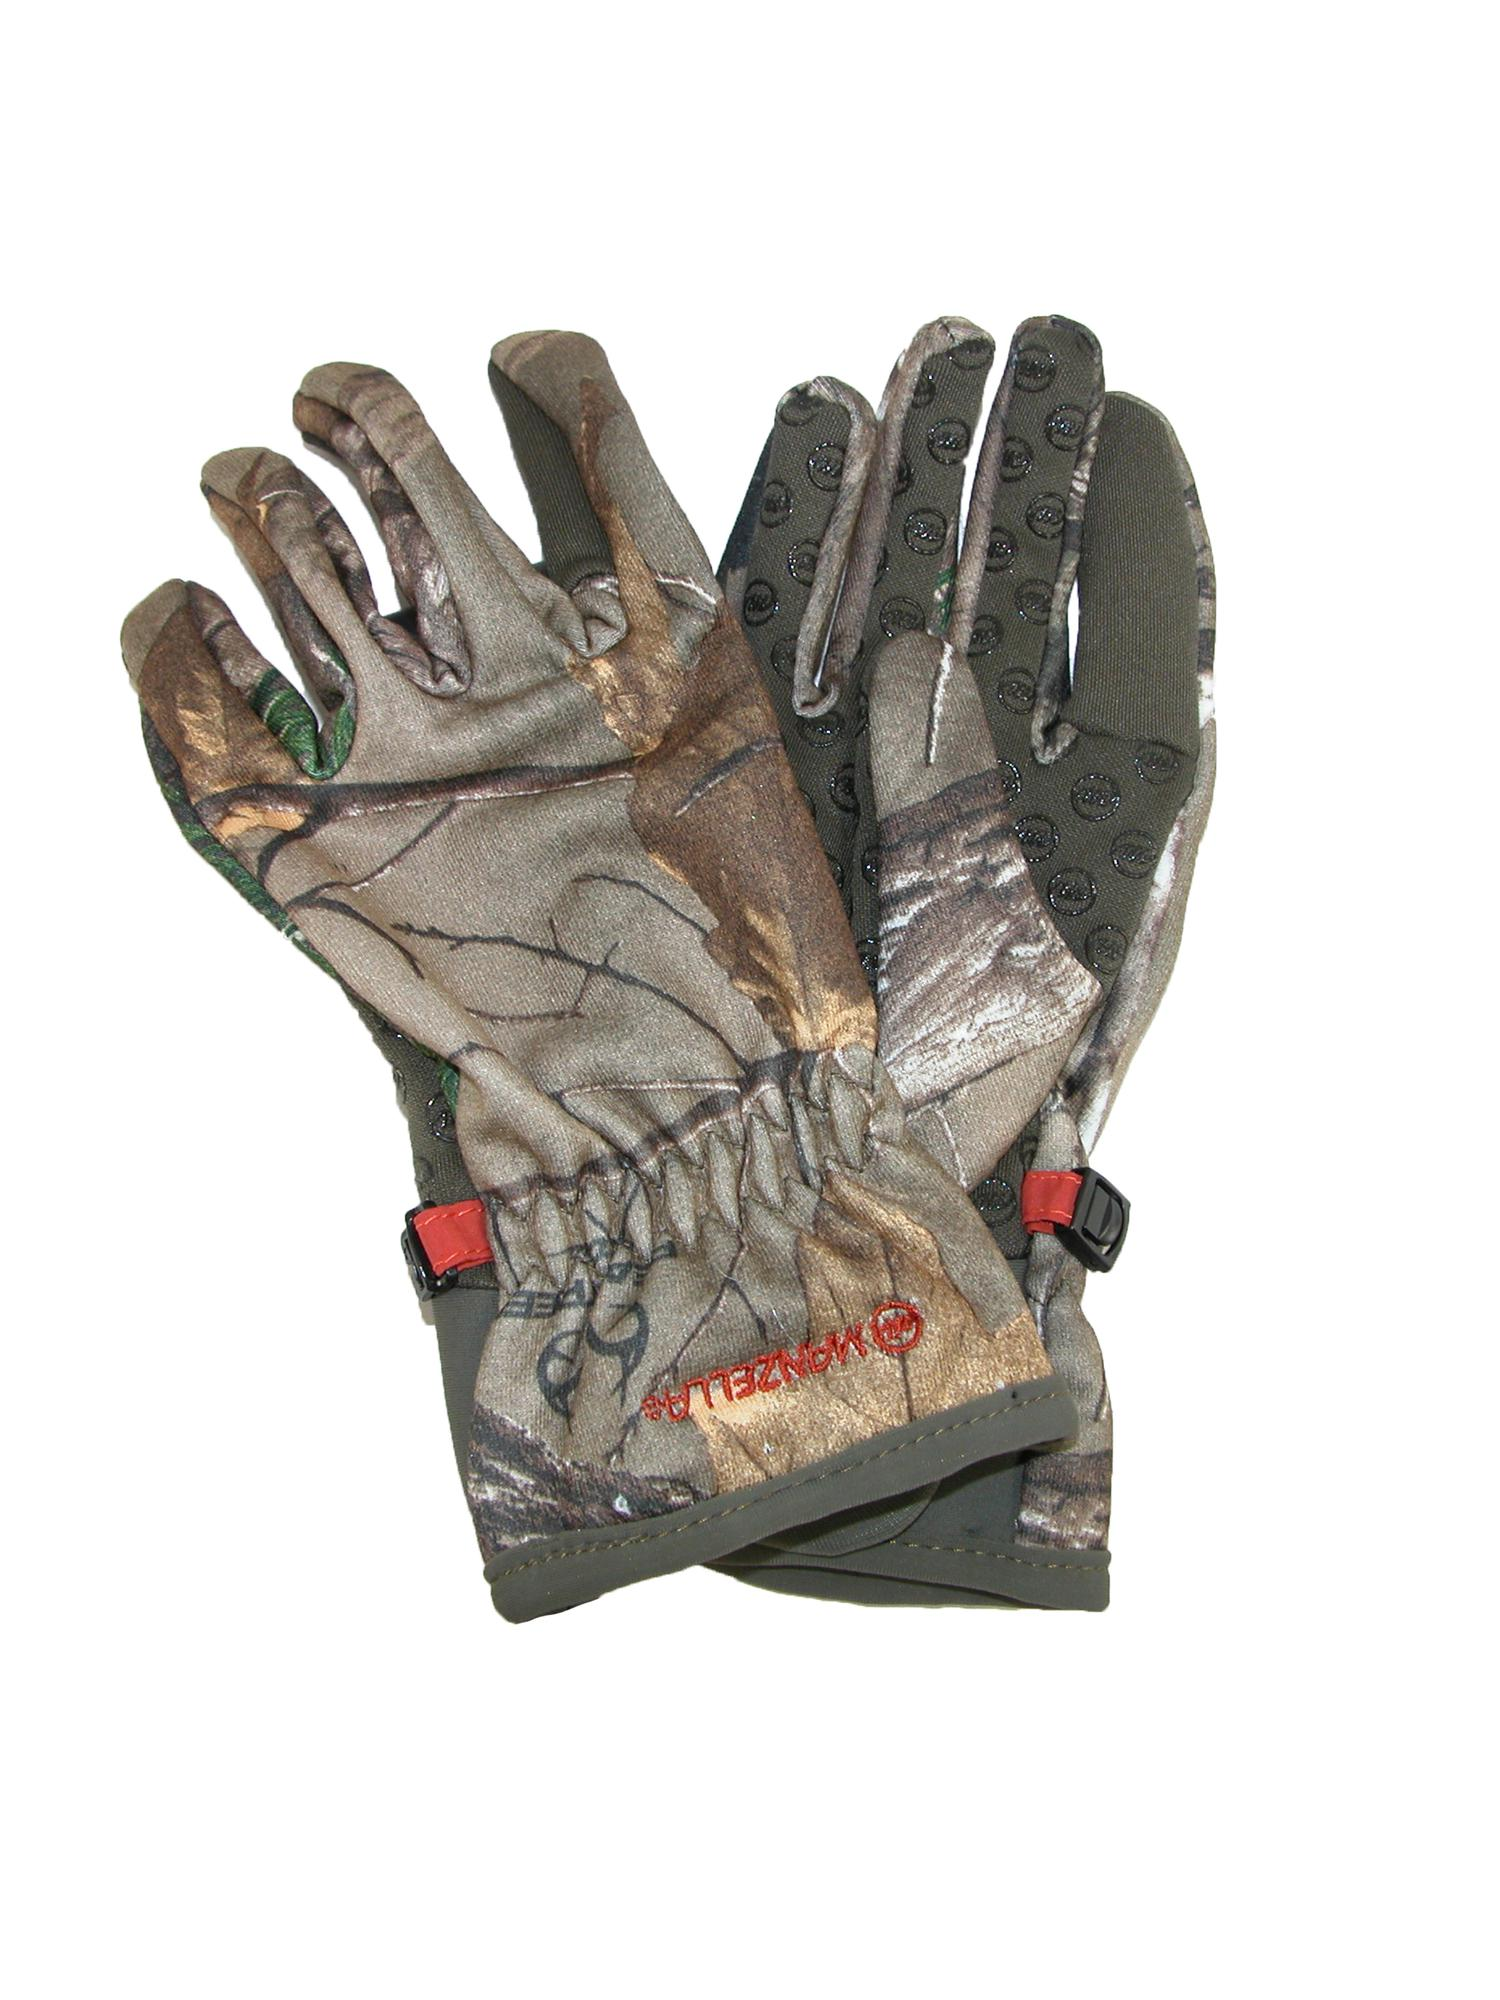 Manzella Women's Realtree Xtra Camouflage Bow Ranger Hunting Gloves by Manzella